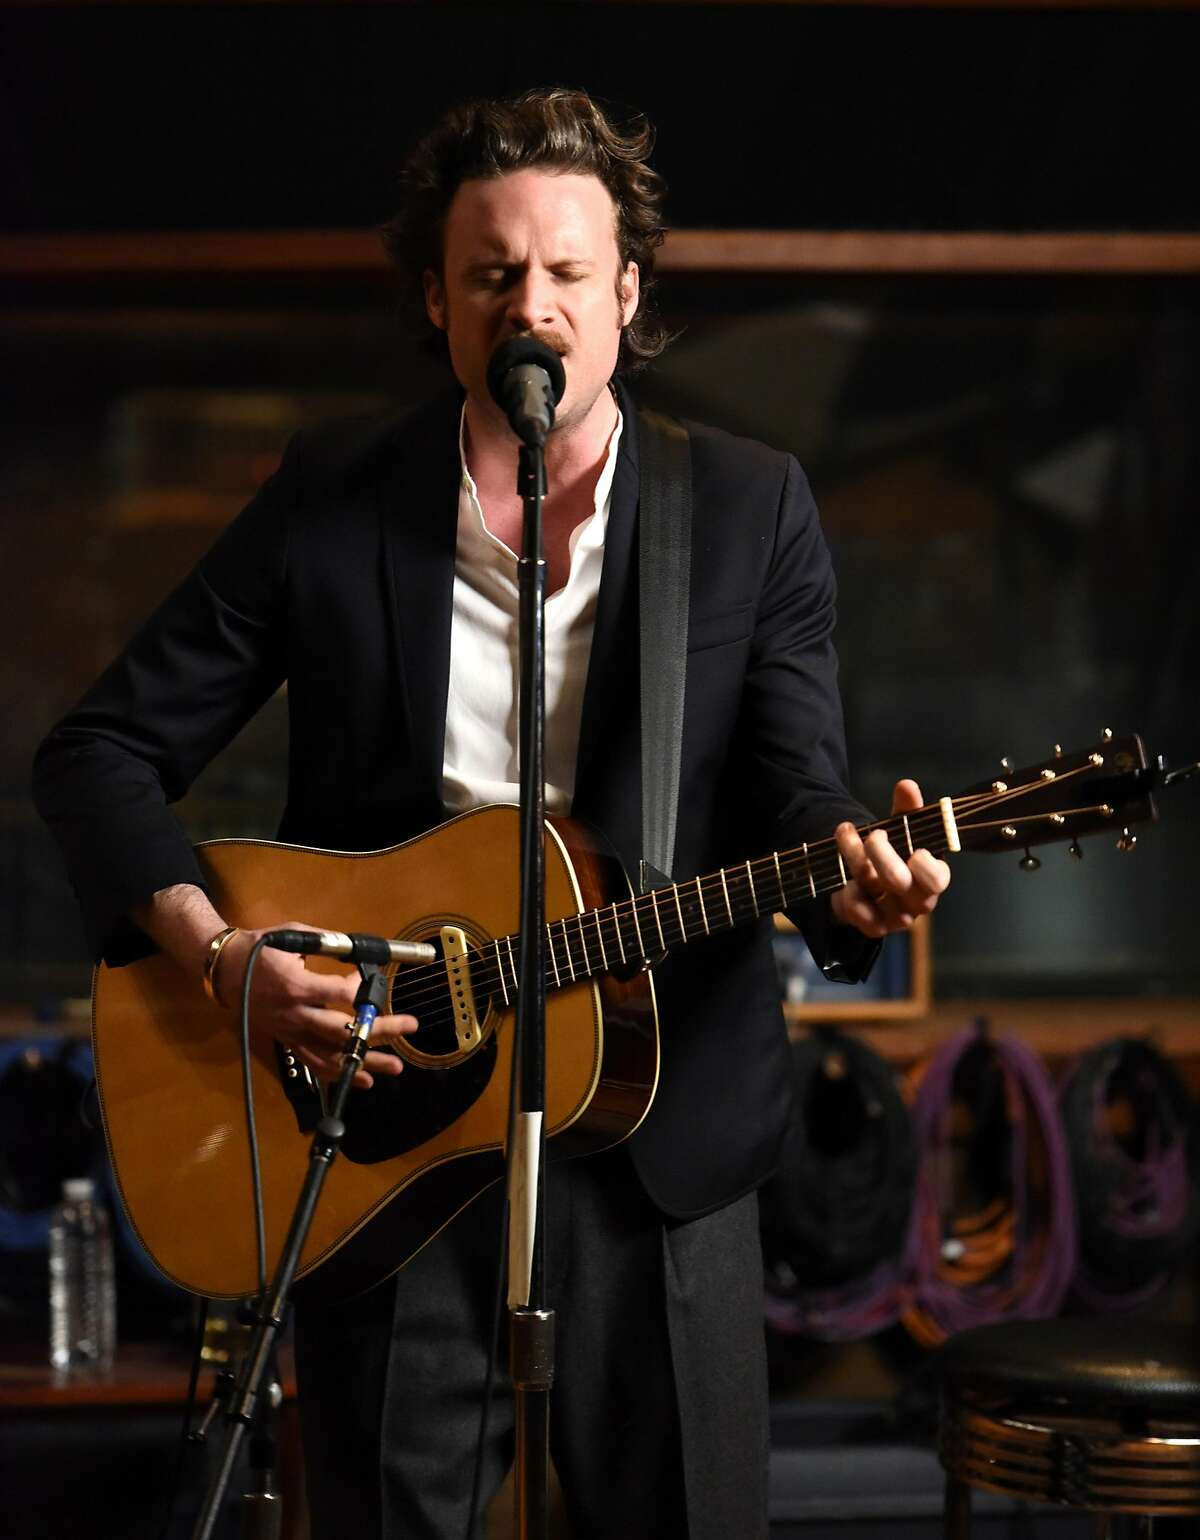 LOS ANGELES, CA - APRIL 06: Father John Misty Performs For SiriusXM at United Studios in Los Angeles at United Studios on April 6, 2017 in Los Angeles, California. (Photo by Vivien Killilea/Getty Images for SiriusXM)